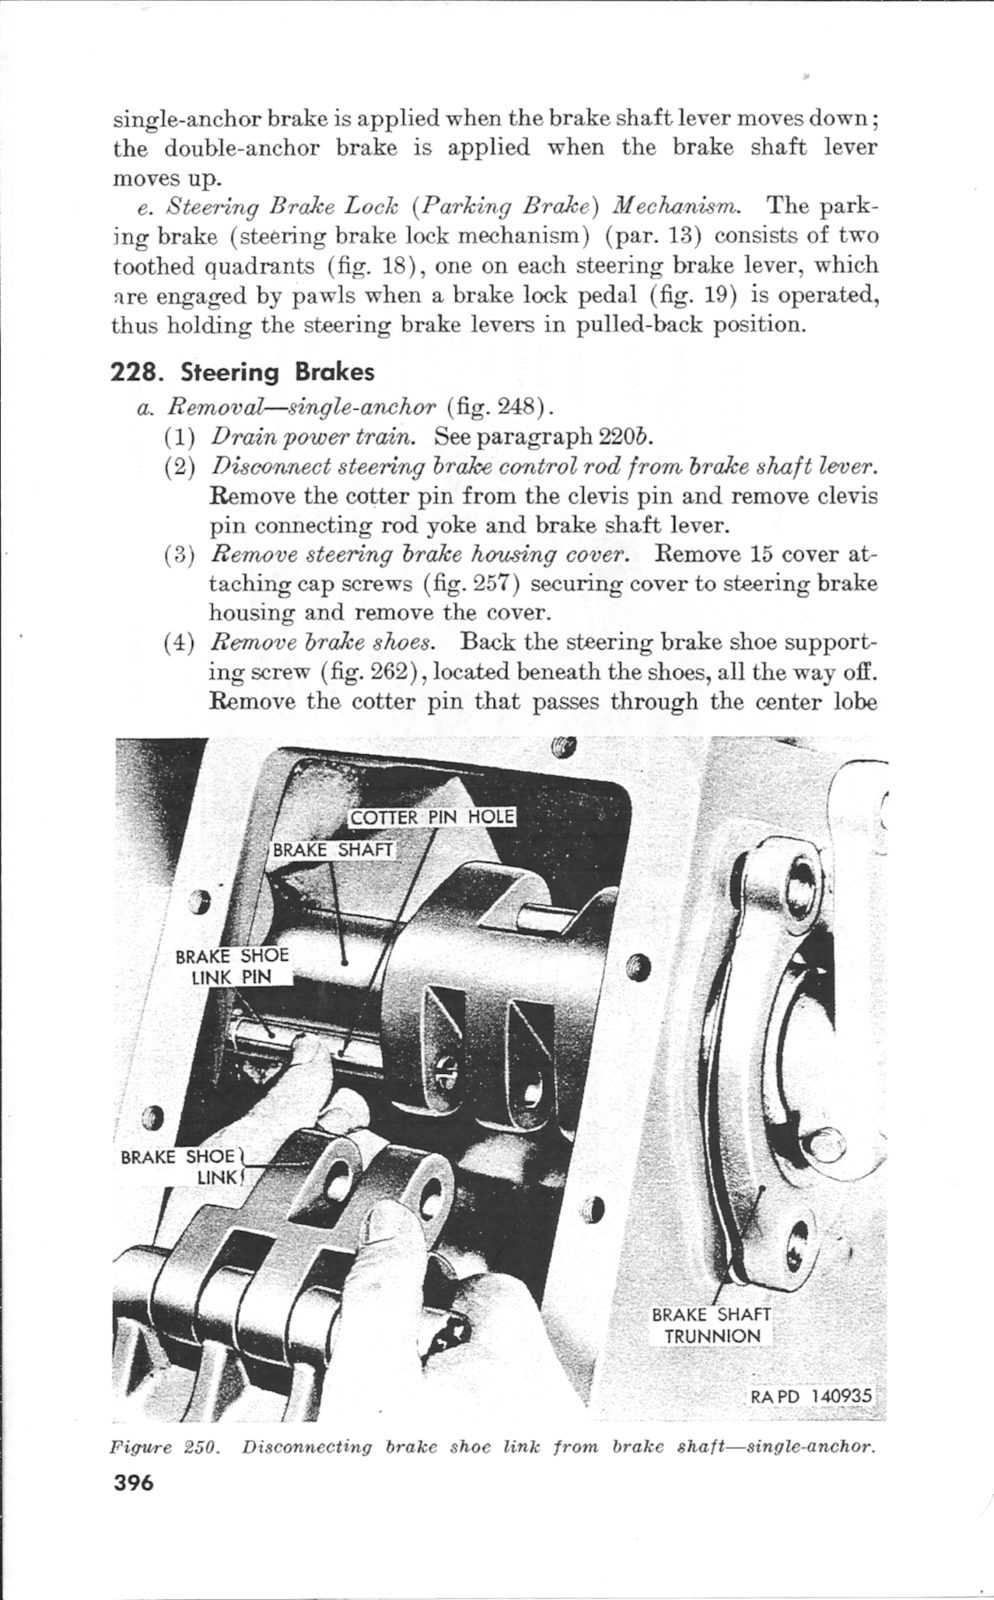 TM9-7018-Section-18-Steering-Brakes-Page